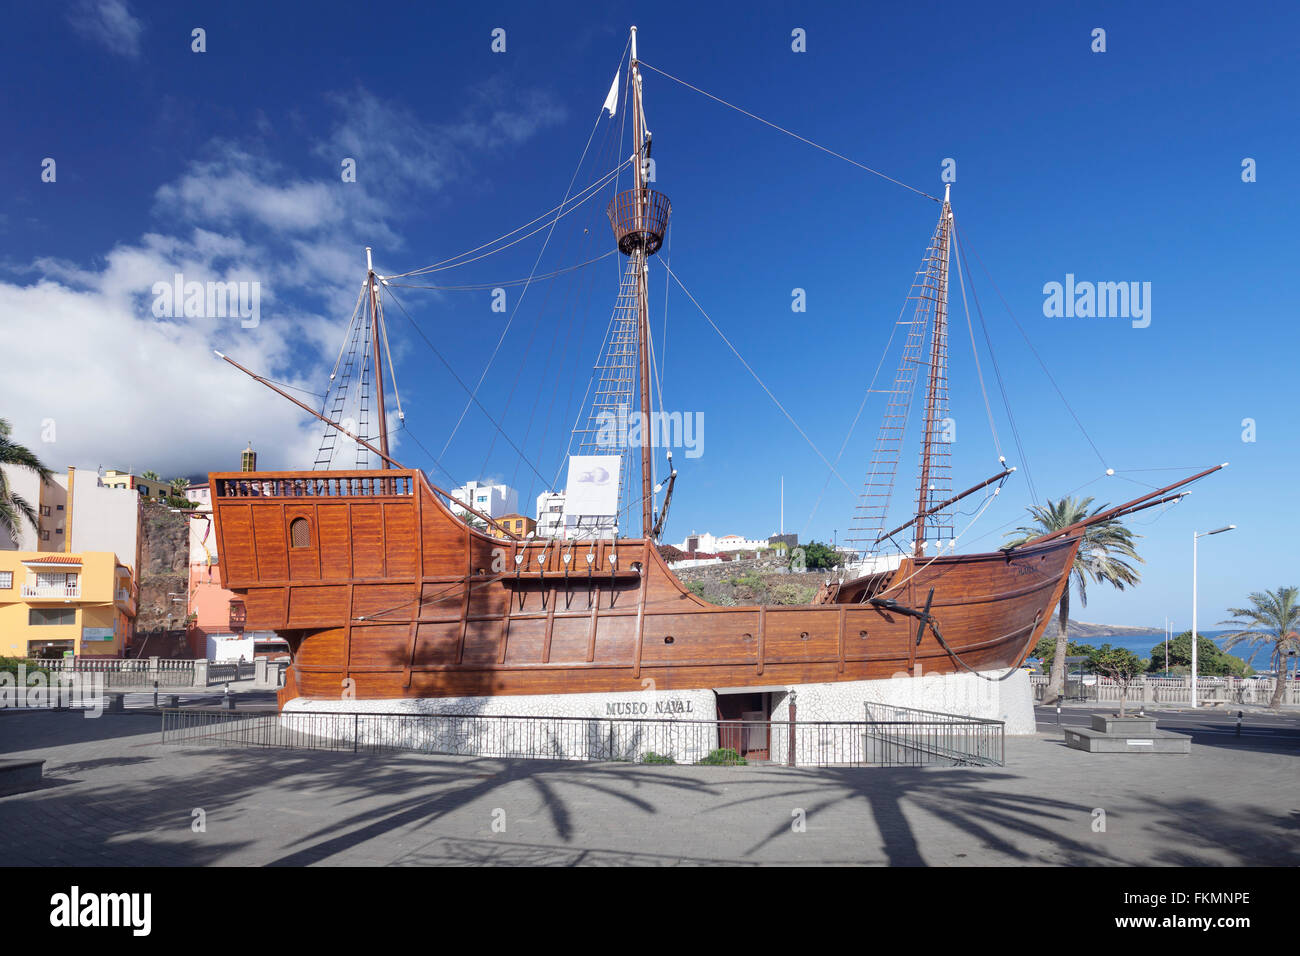 Museum Museo Naval Santa Maria, replica of the flagship of Columbus, Santa Cruz de La Palma, La Palma, Canary Islands, - Stock Image